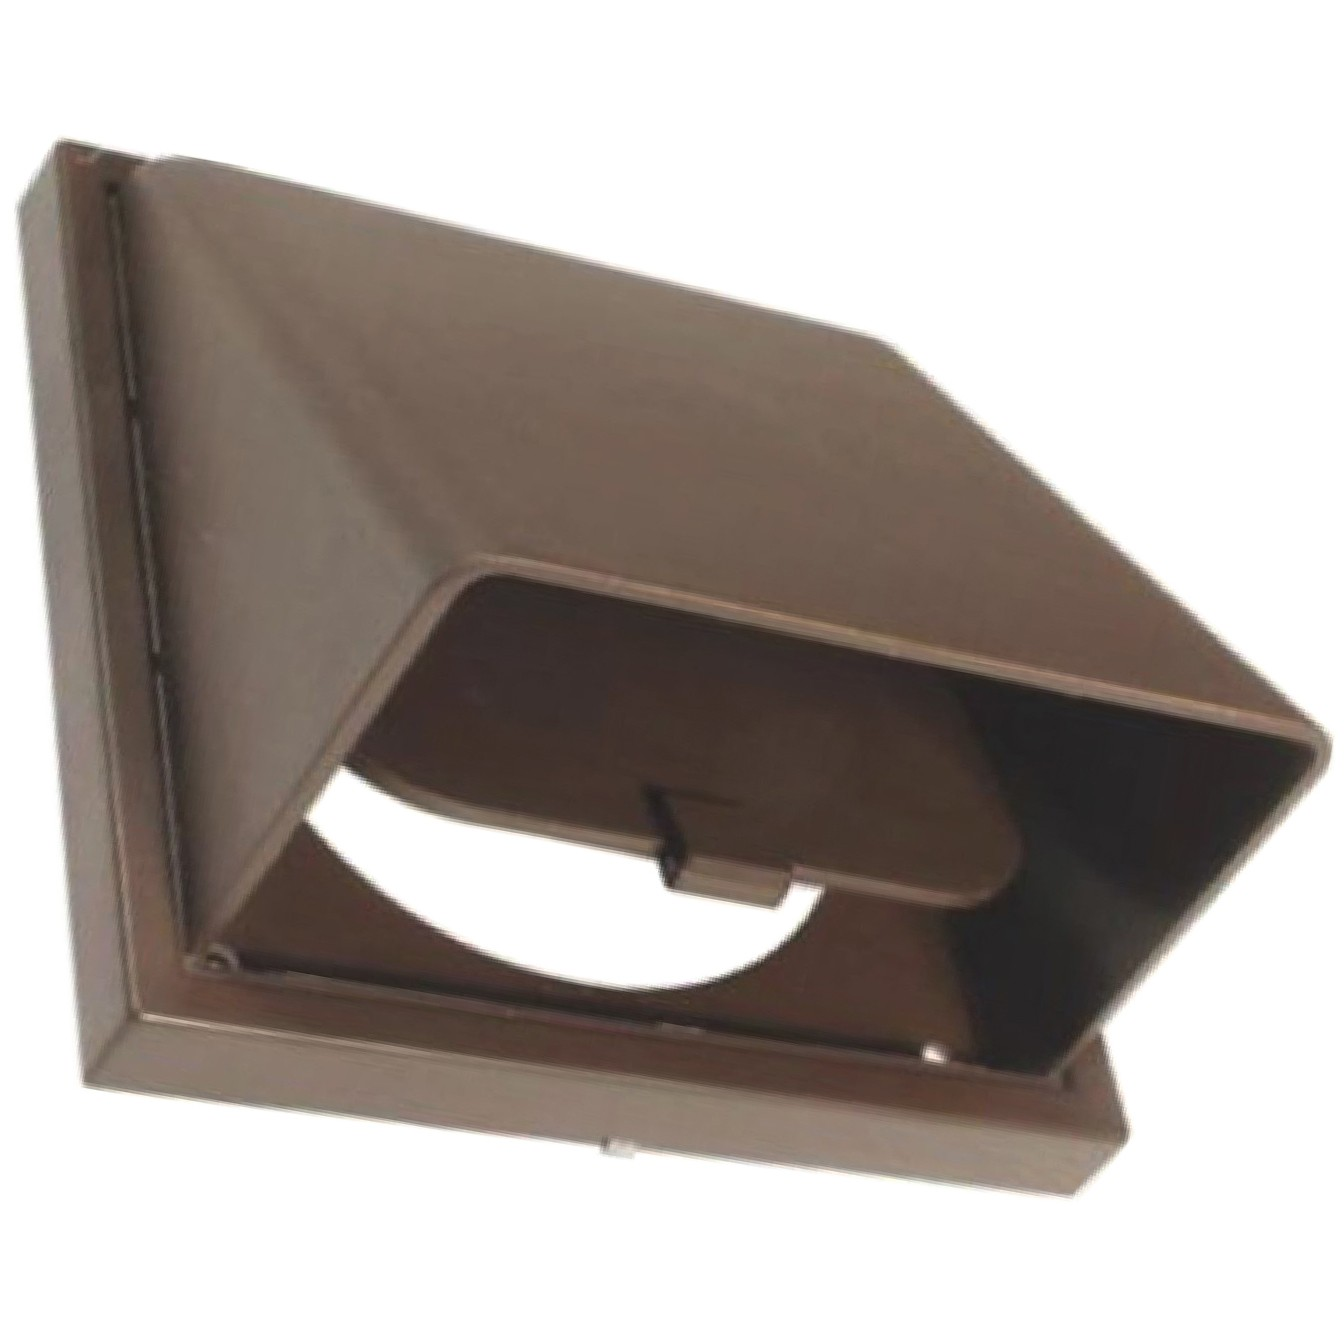 Manrose Round Ducting Pipe Wall Hood Cowled Outlet - Brown, 125mm